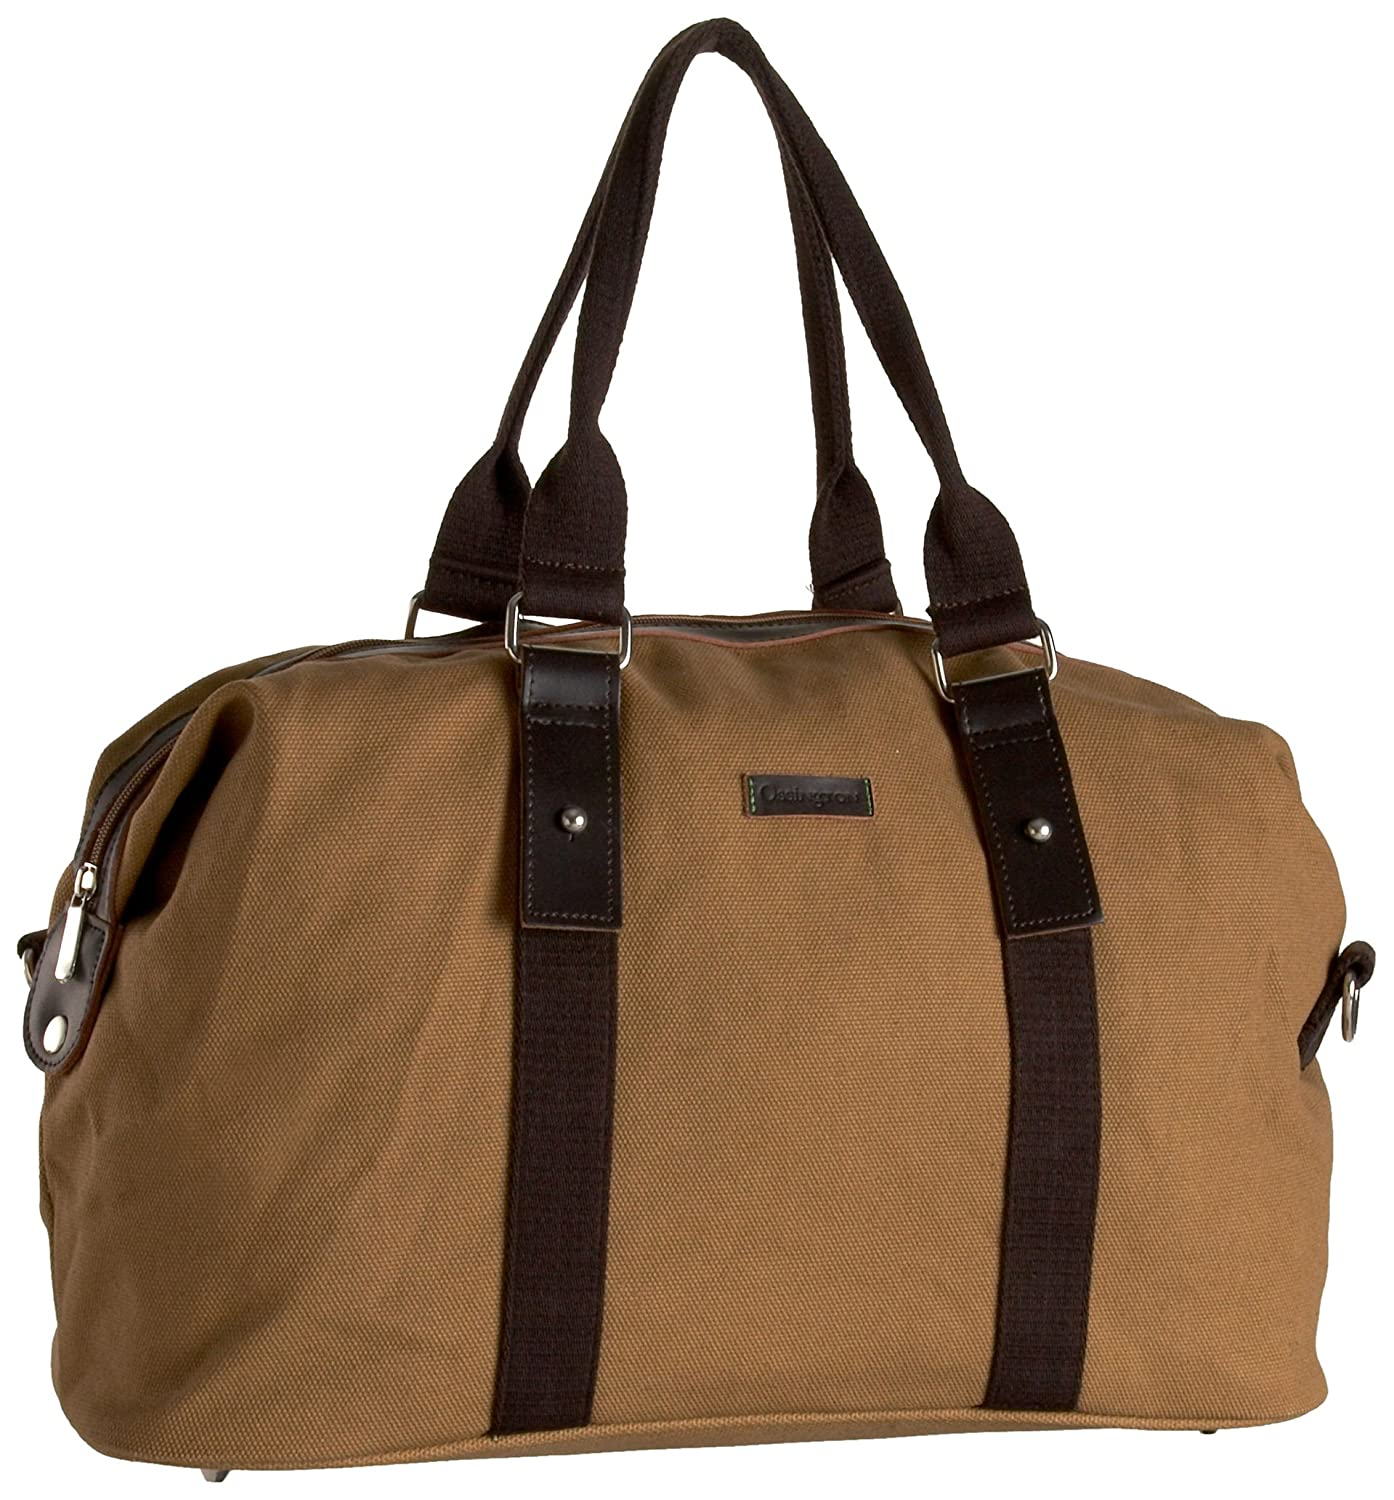 Ossington Prince duffel bag